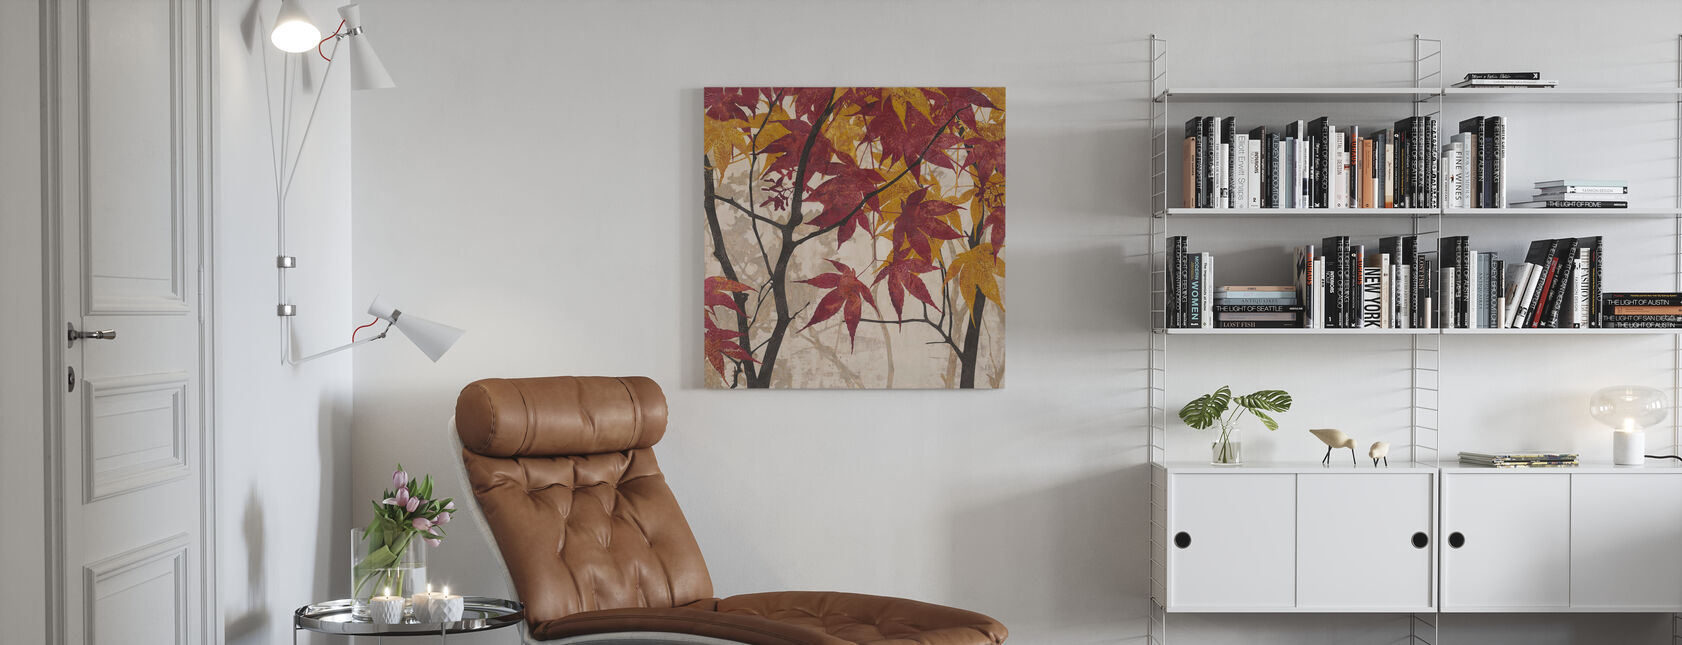 Maple Story 1 - Canvas print - Living Room